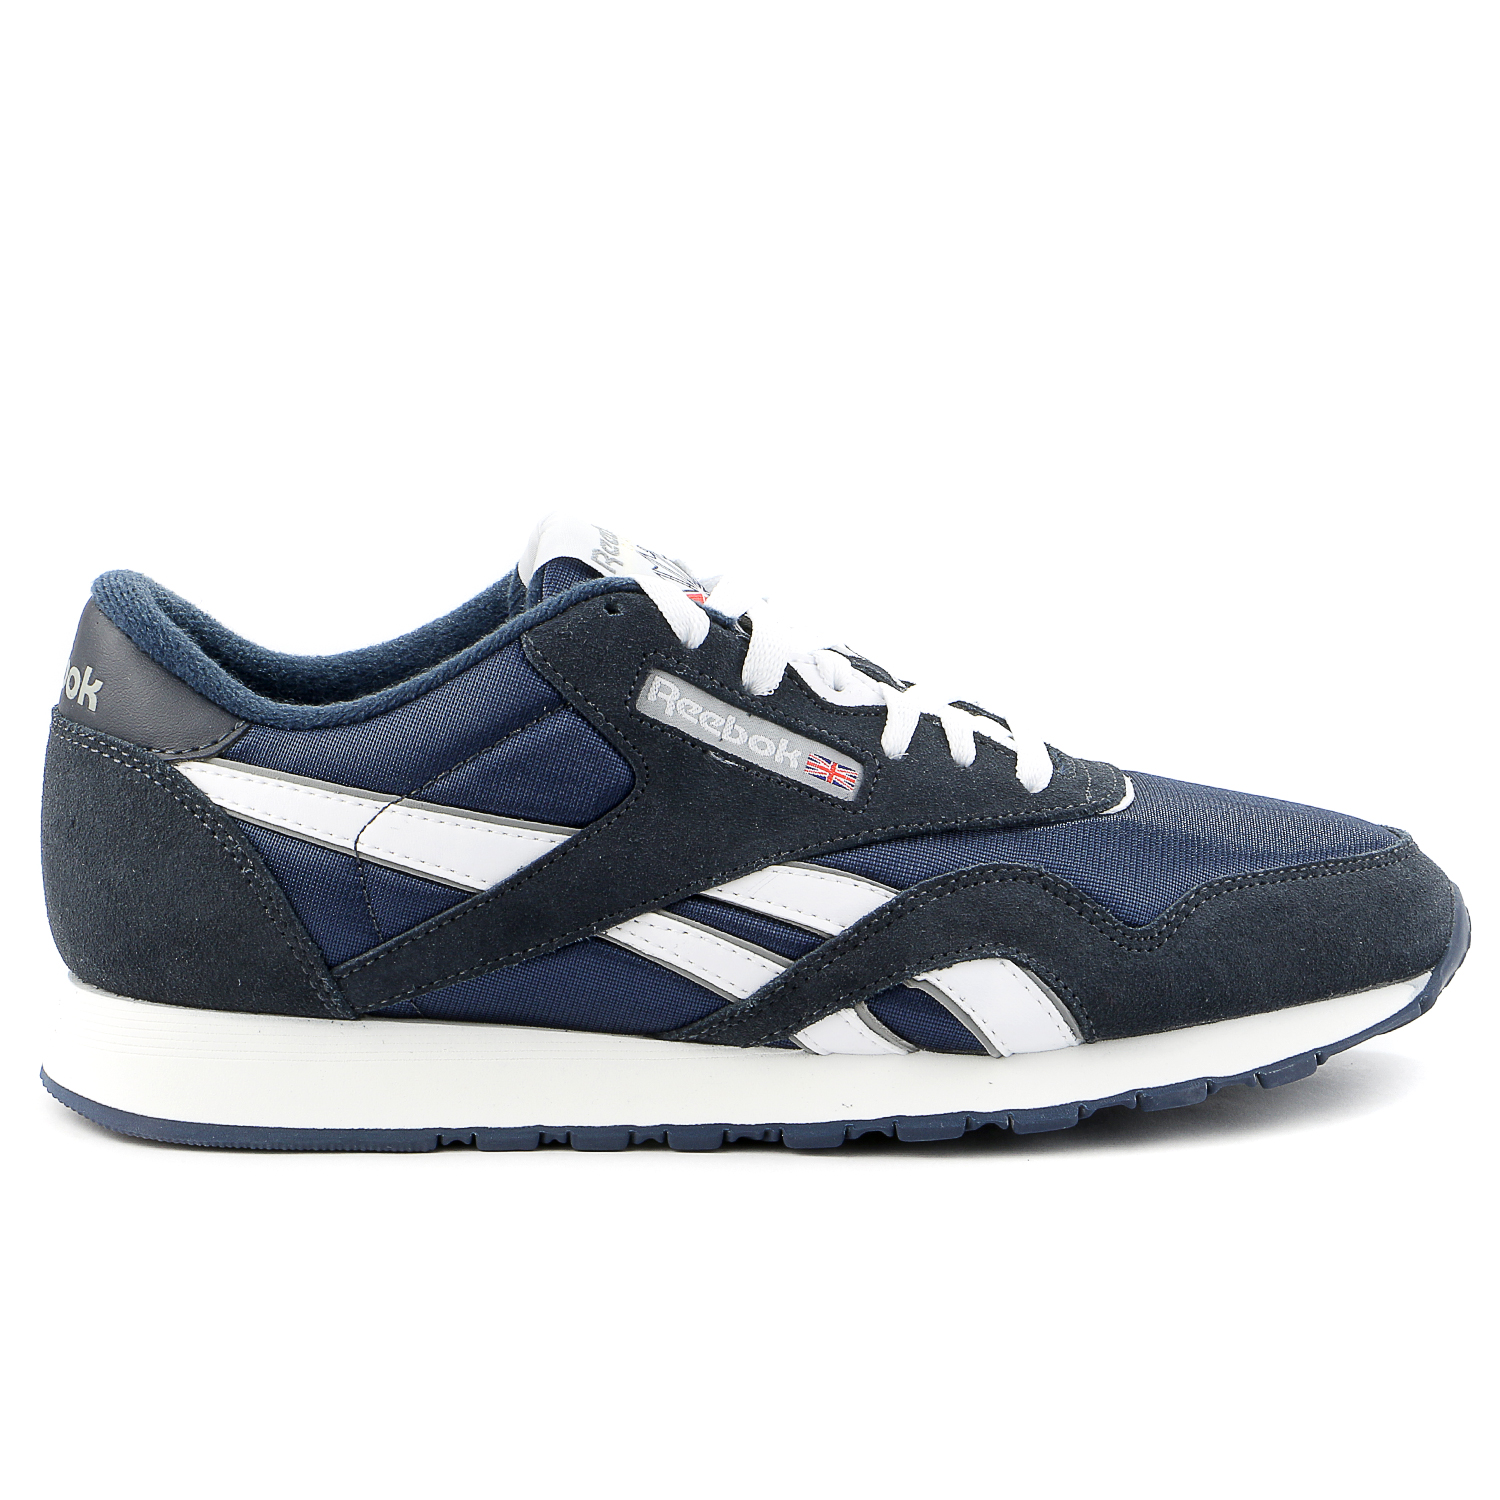 Reebok Classic Nylon Running Shoe Team Navy Platinum Mens by Reebok